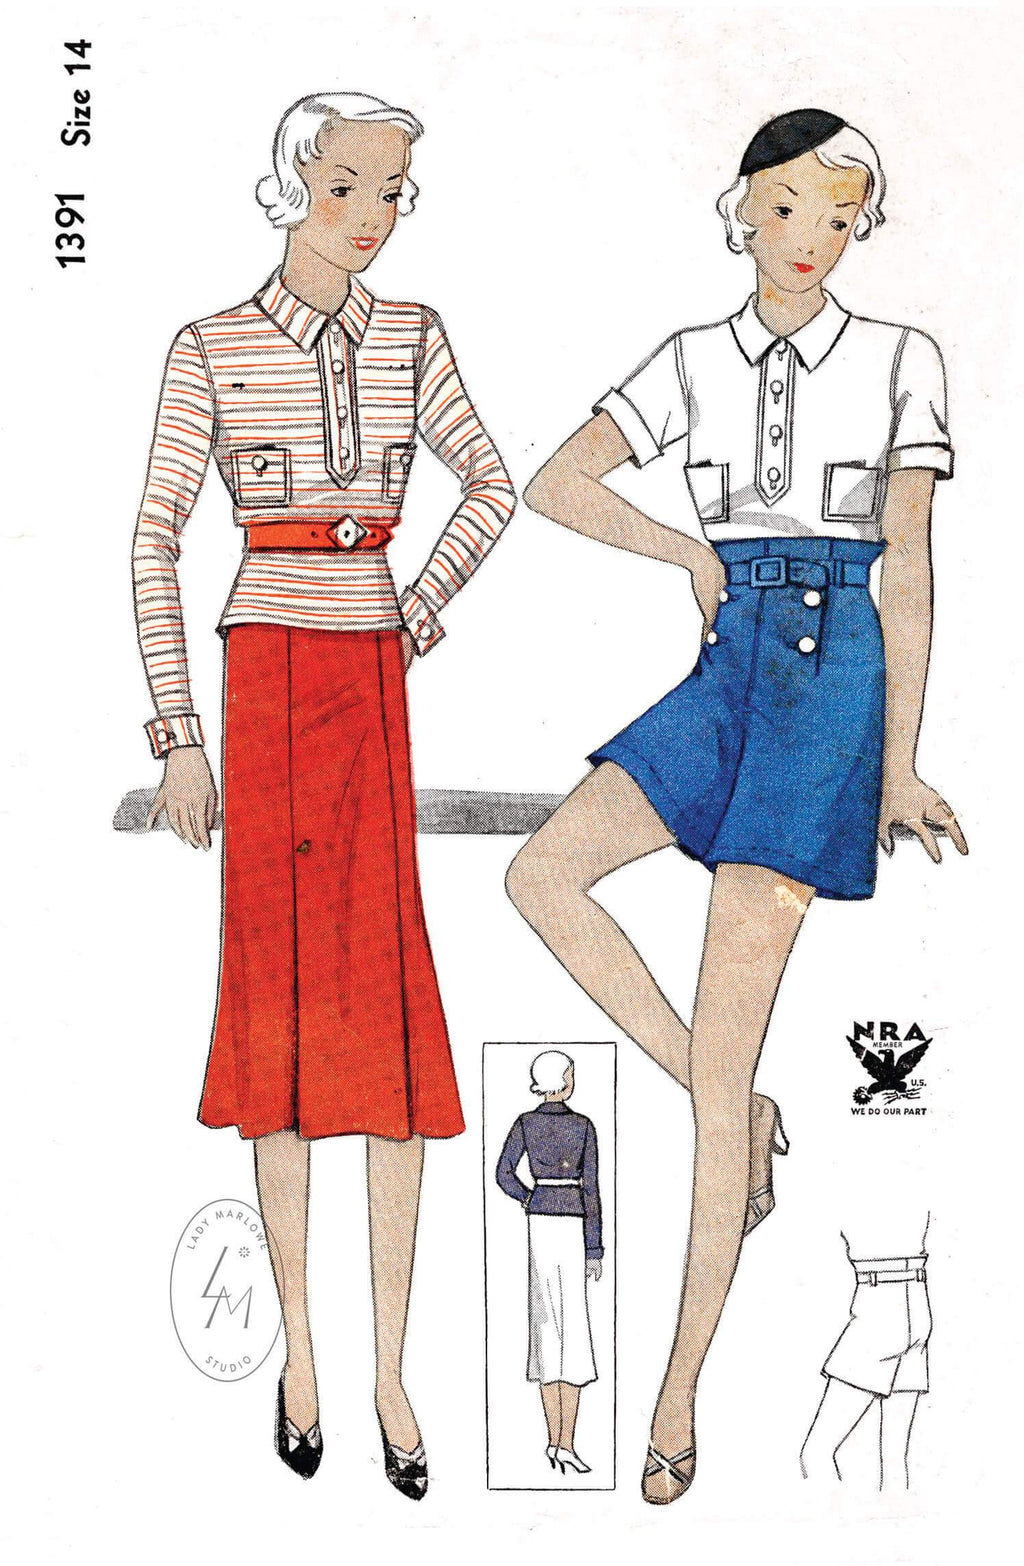 Simplicity 1391 1930s sportswear 3 piece ensemble high waist shorts polo shirt & skirt vintage sewing pattern repro